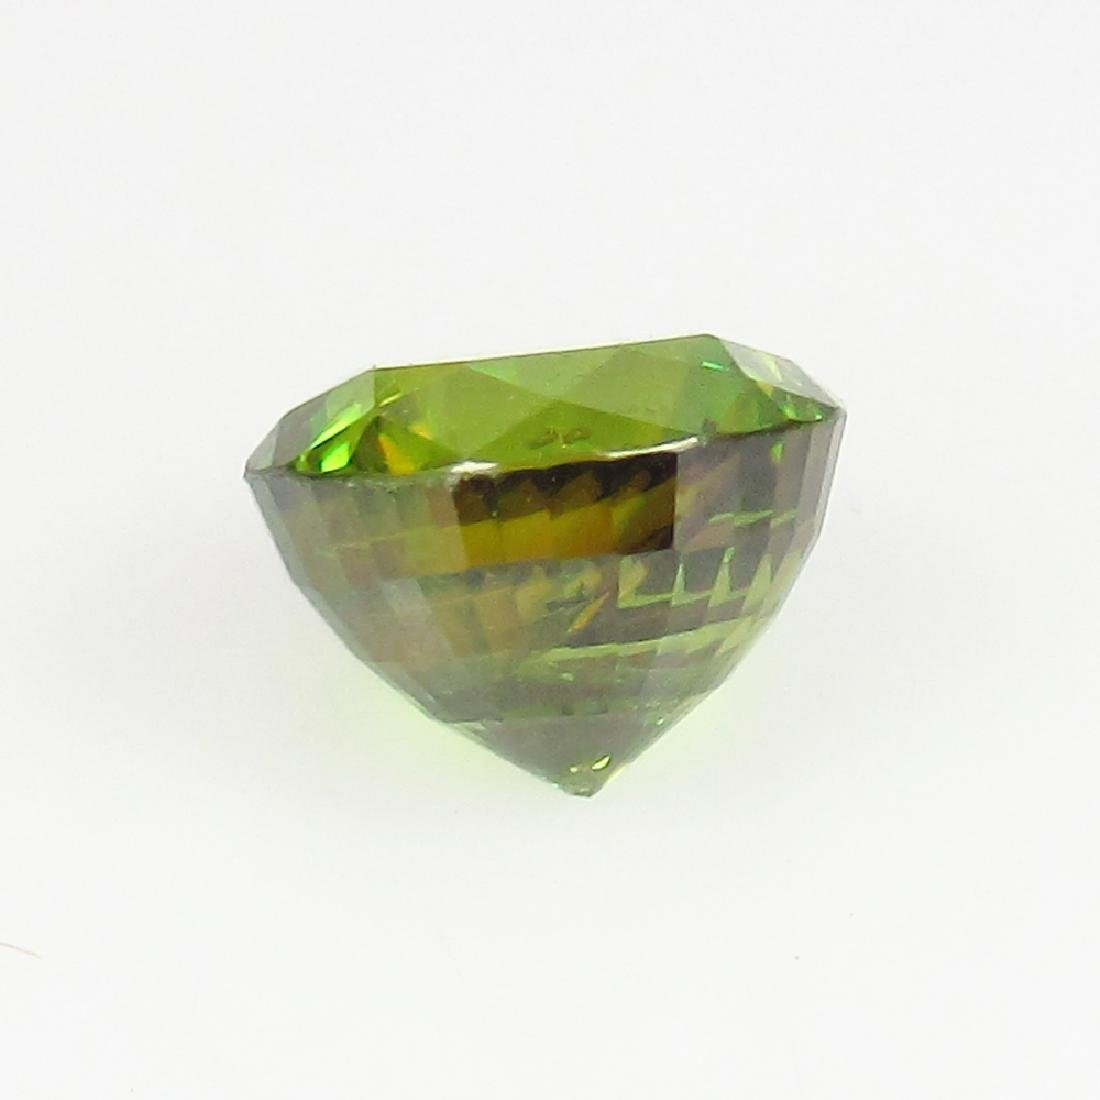 IGI Certified 2.01 Ct Genuine Yellowish Green Sphene - 6